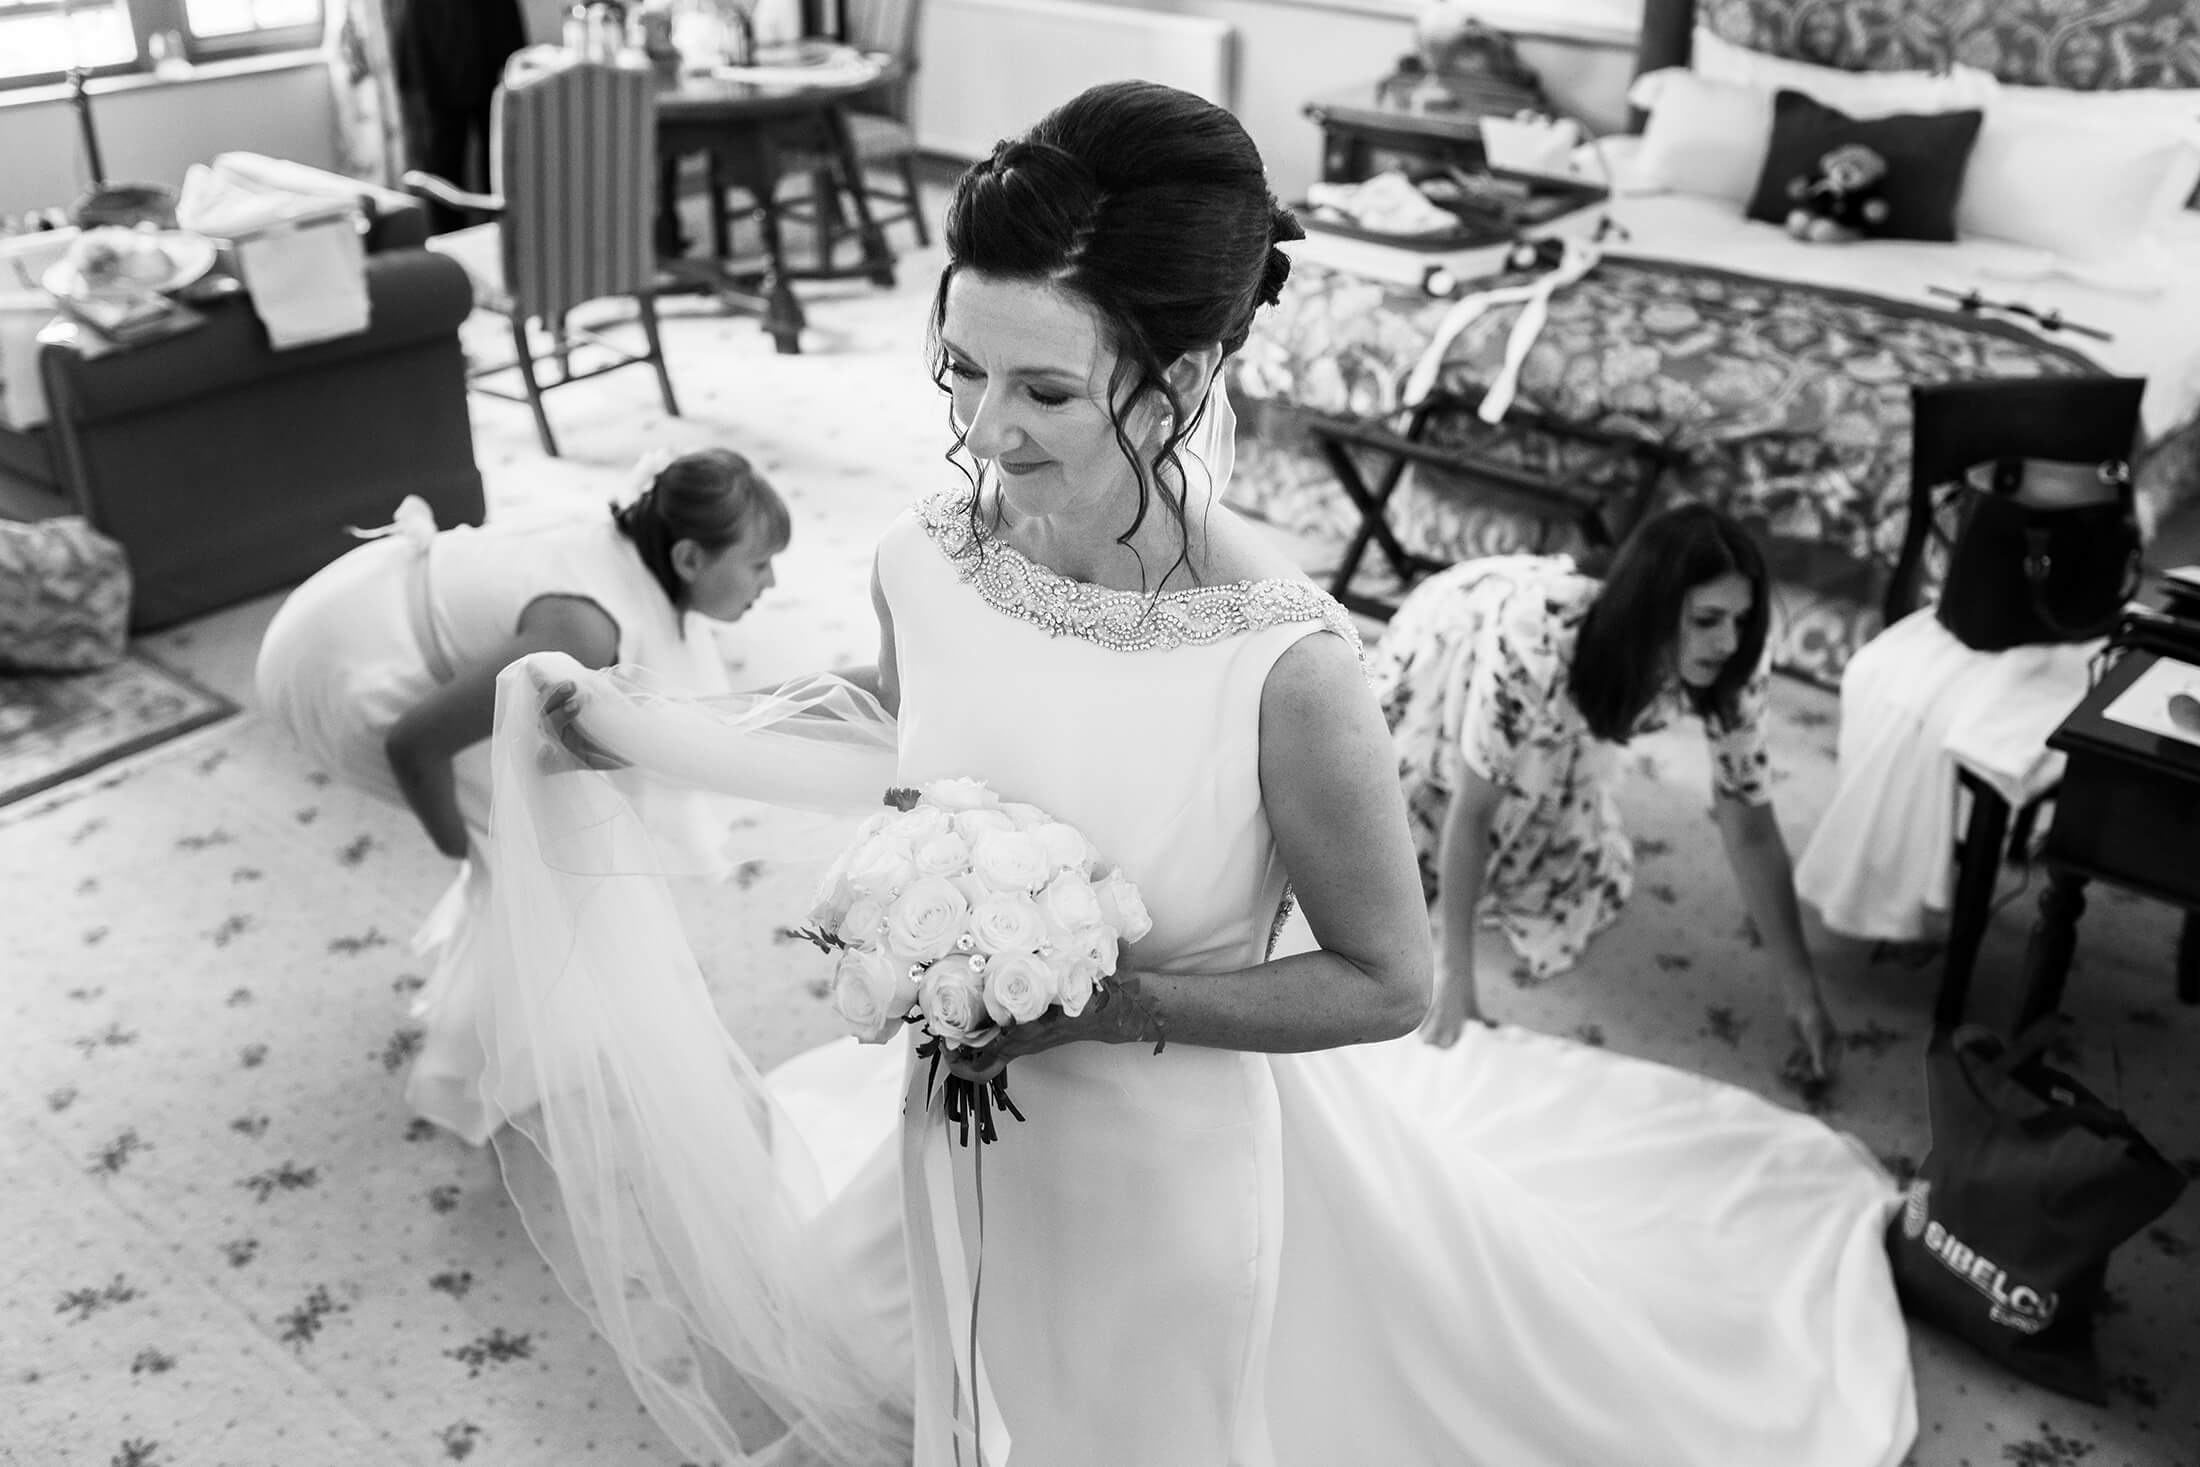 A bride waits as her bridesmaids tend to her dress prior to her wedding at Nunsmere Hall in Cheshire